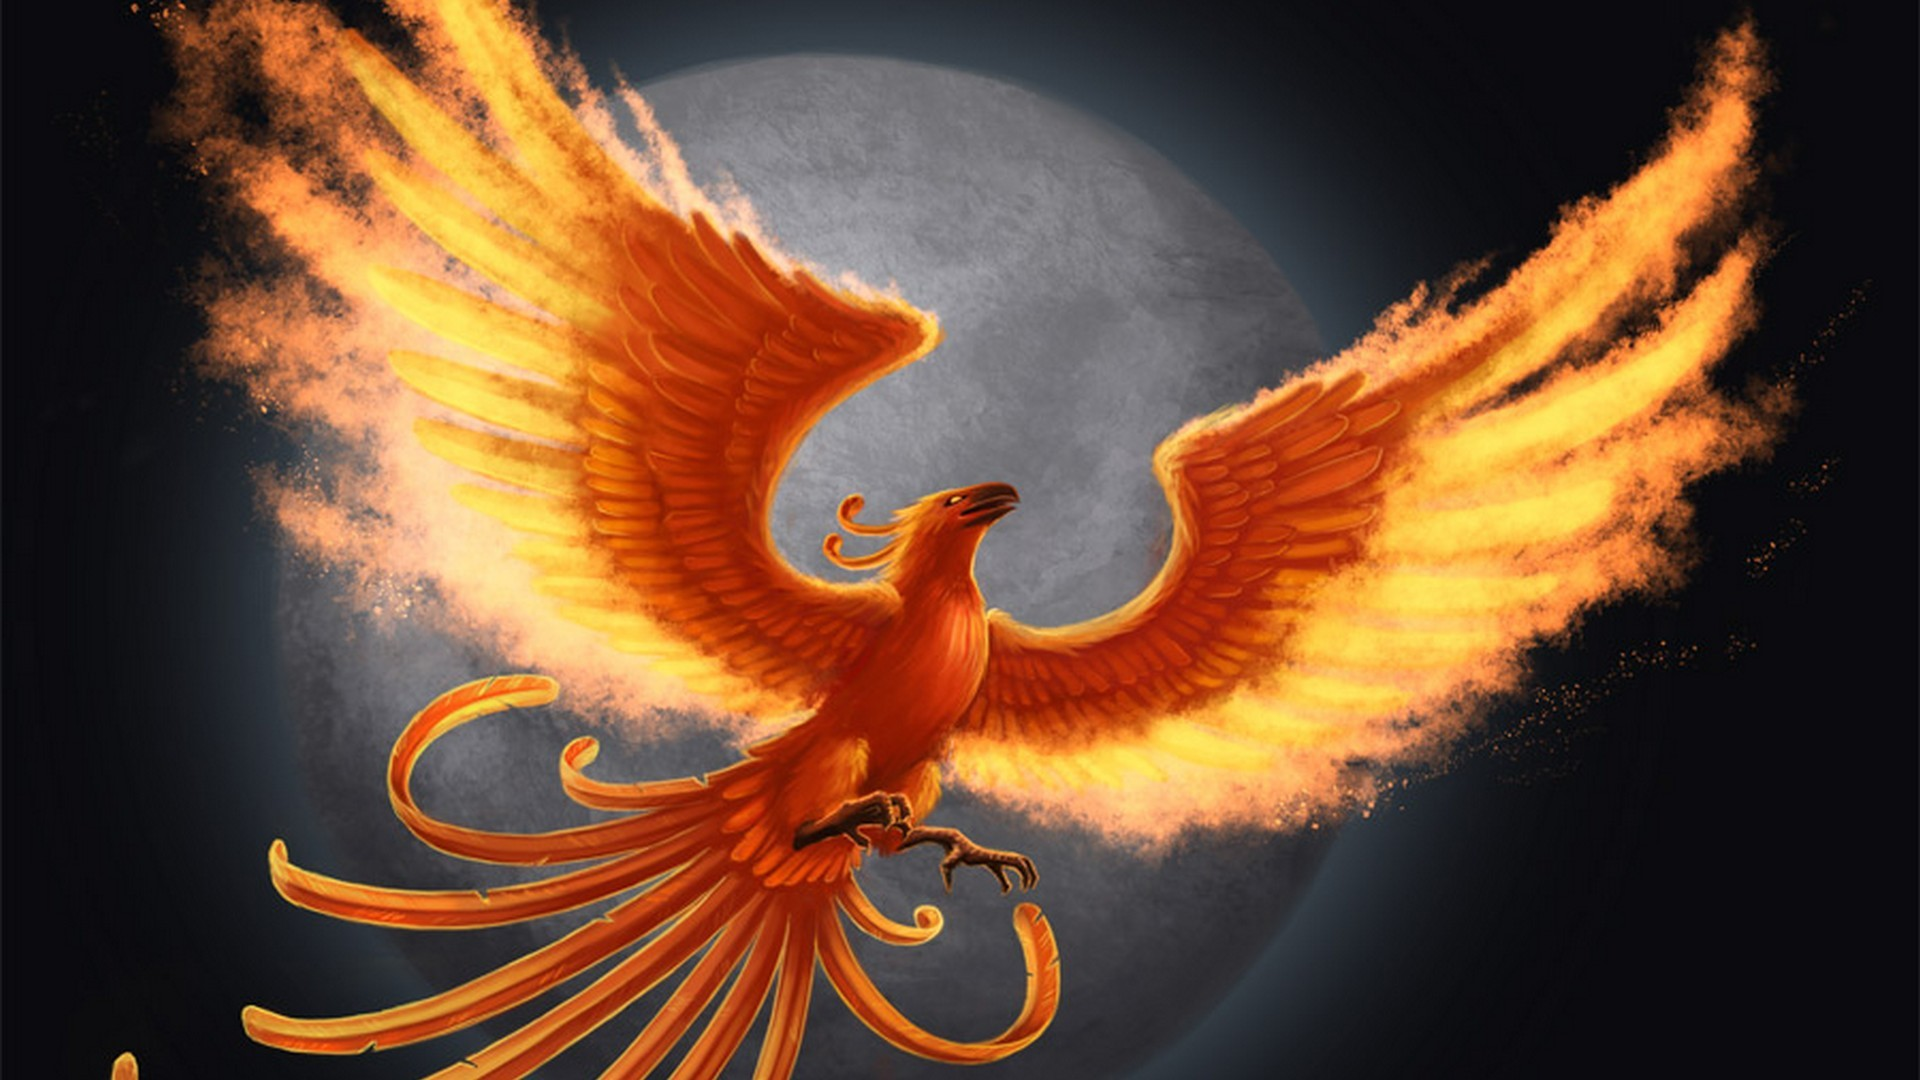 Phoenix Bird Wallpapers (82+ Background Pictures